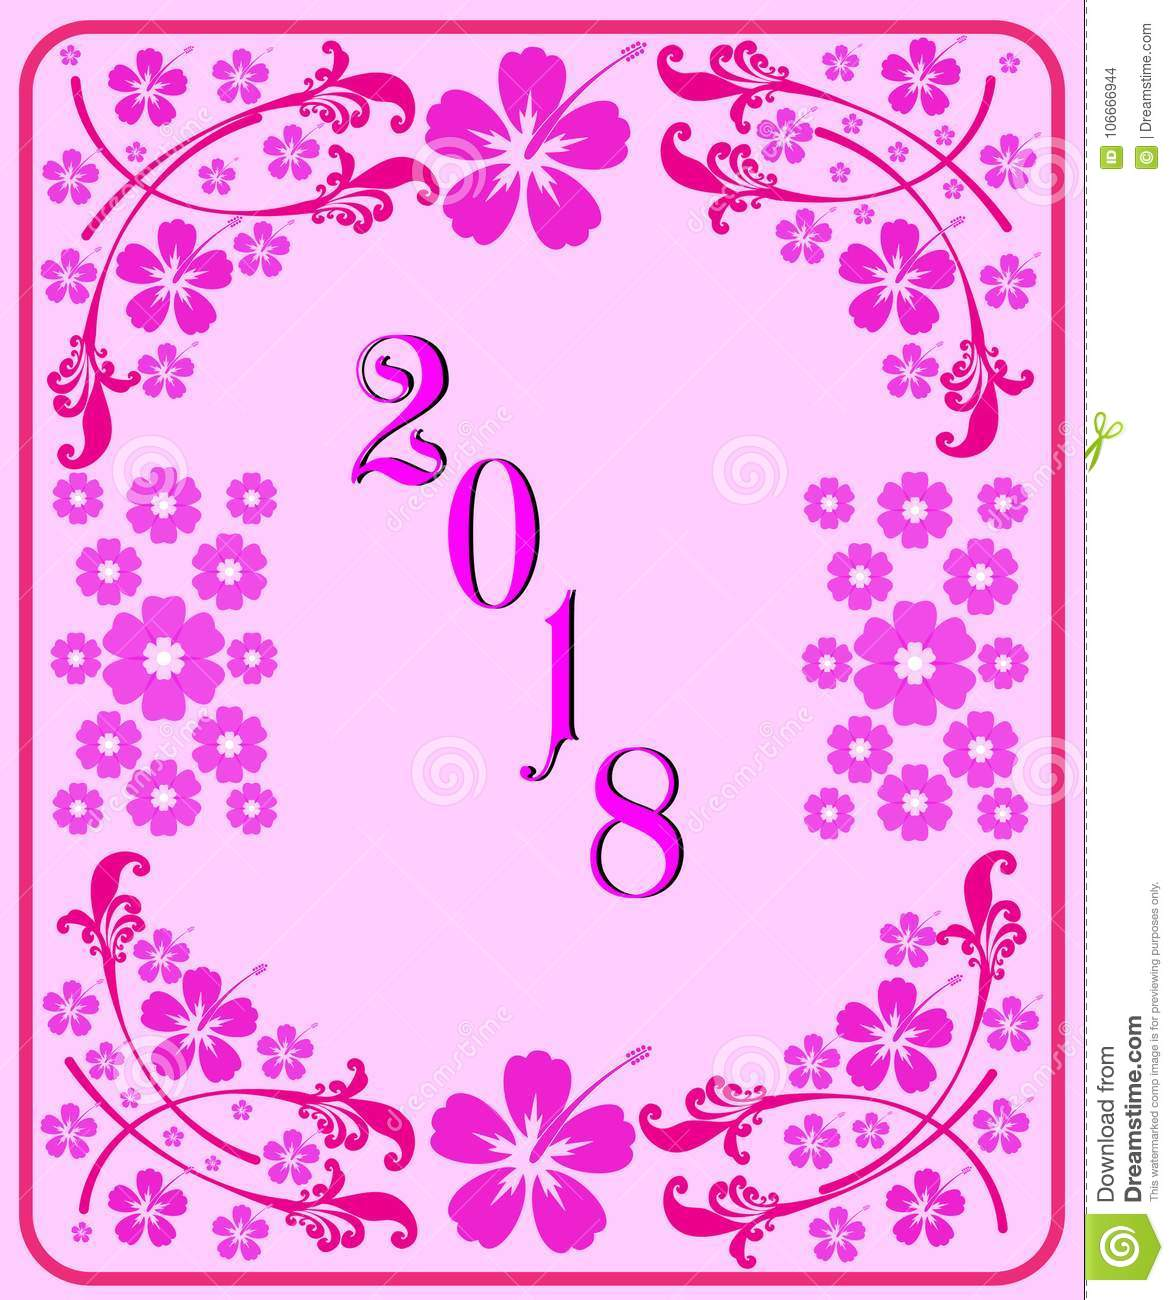 Happy new year 2018 with background